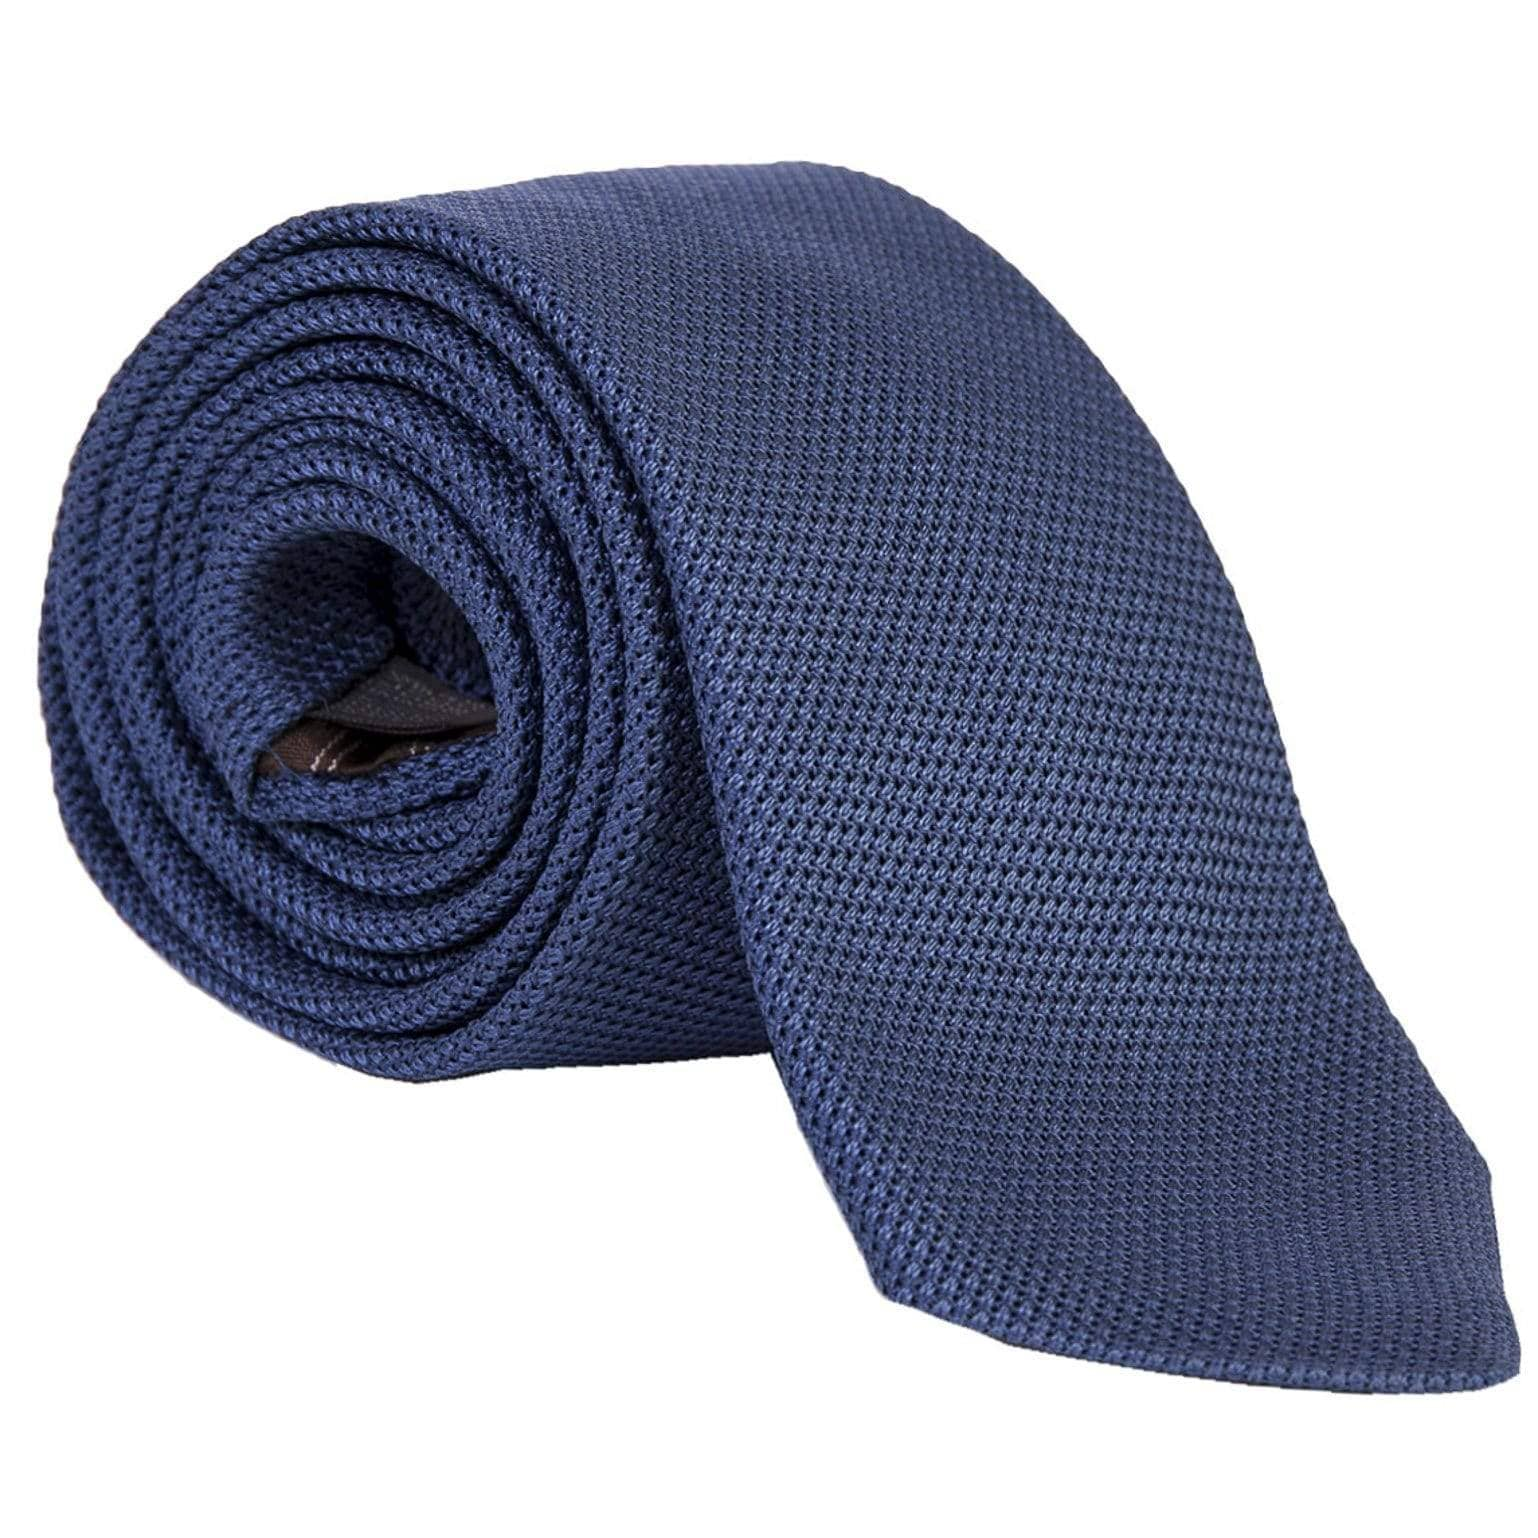 Extra Long Silk Tie - Blue Grenadine - Made in Italy